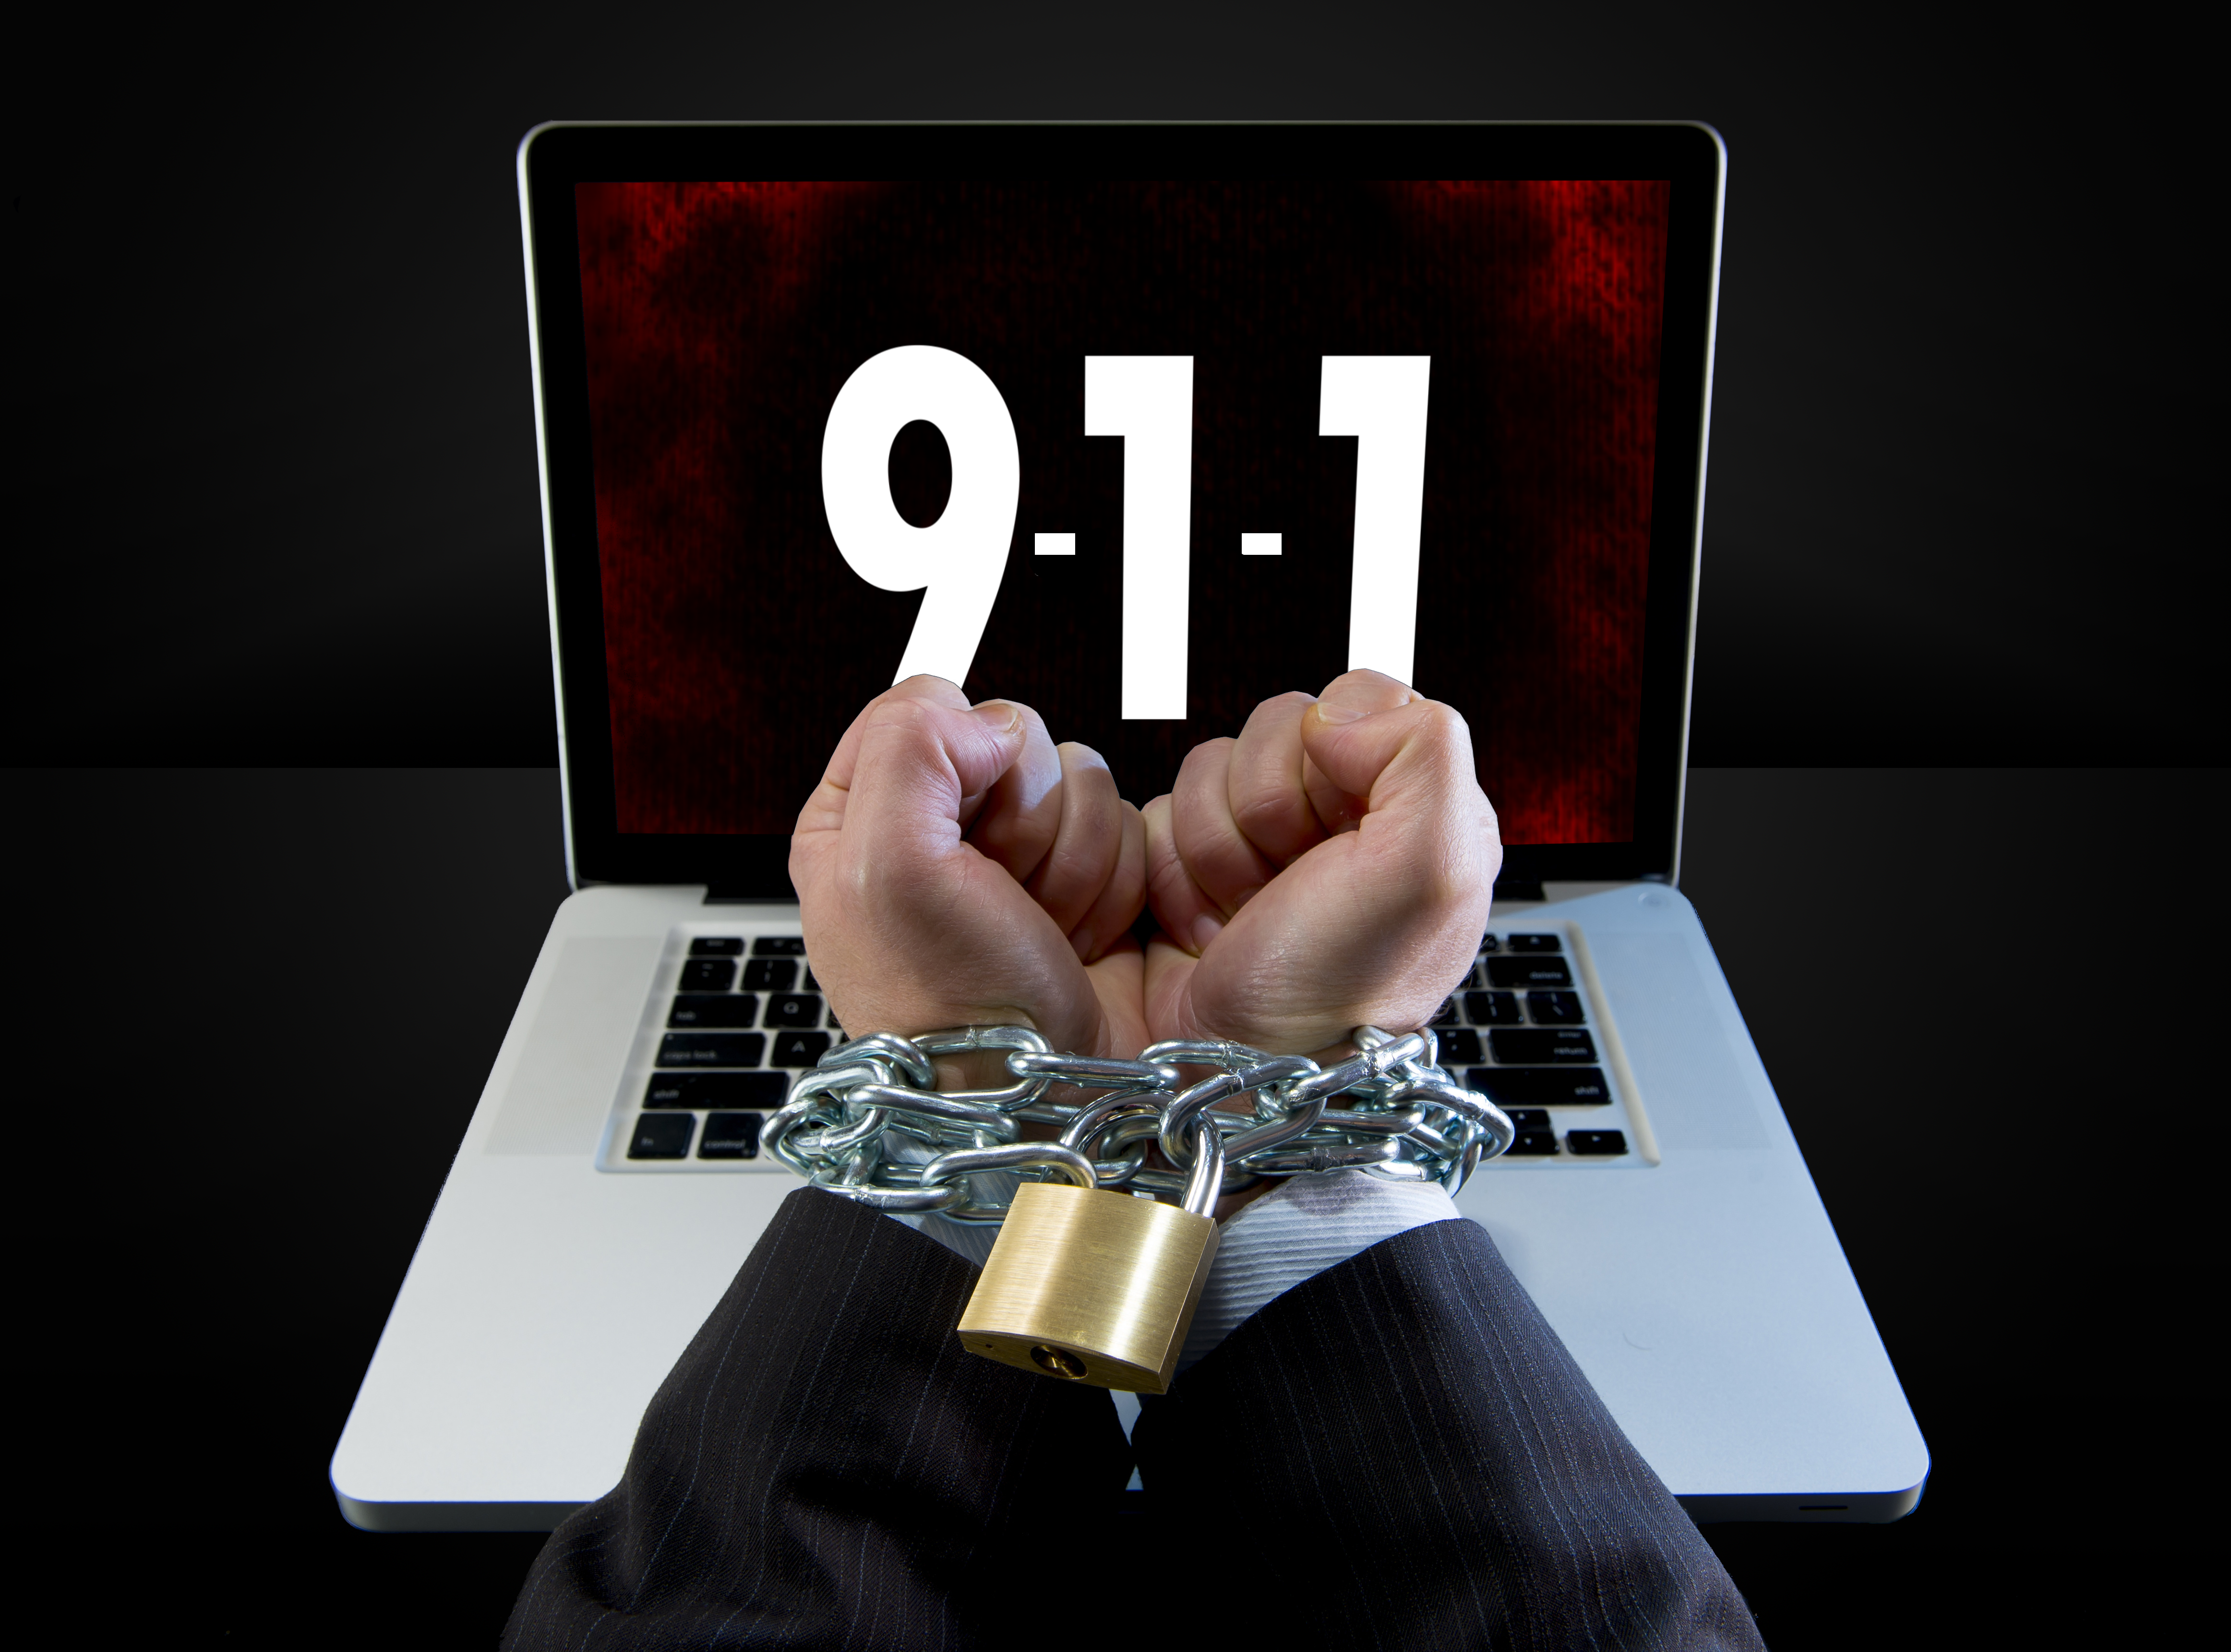 Hands shackled in front of a laptop with 9-1-1 on the screen with a menacing background.